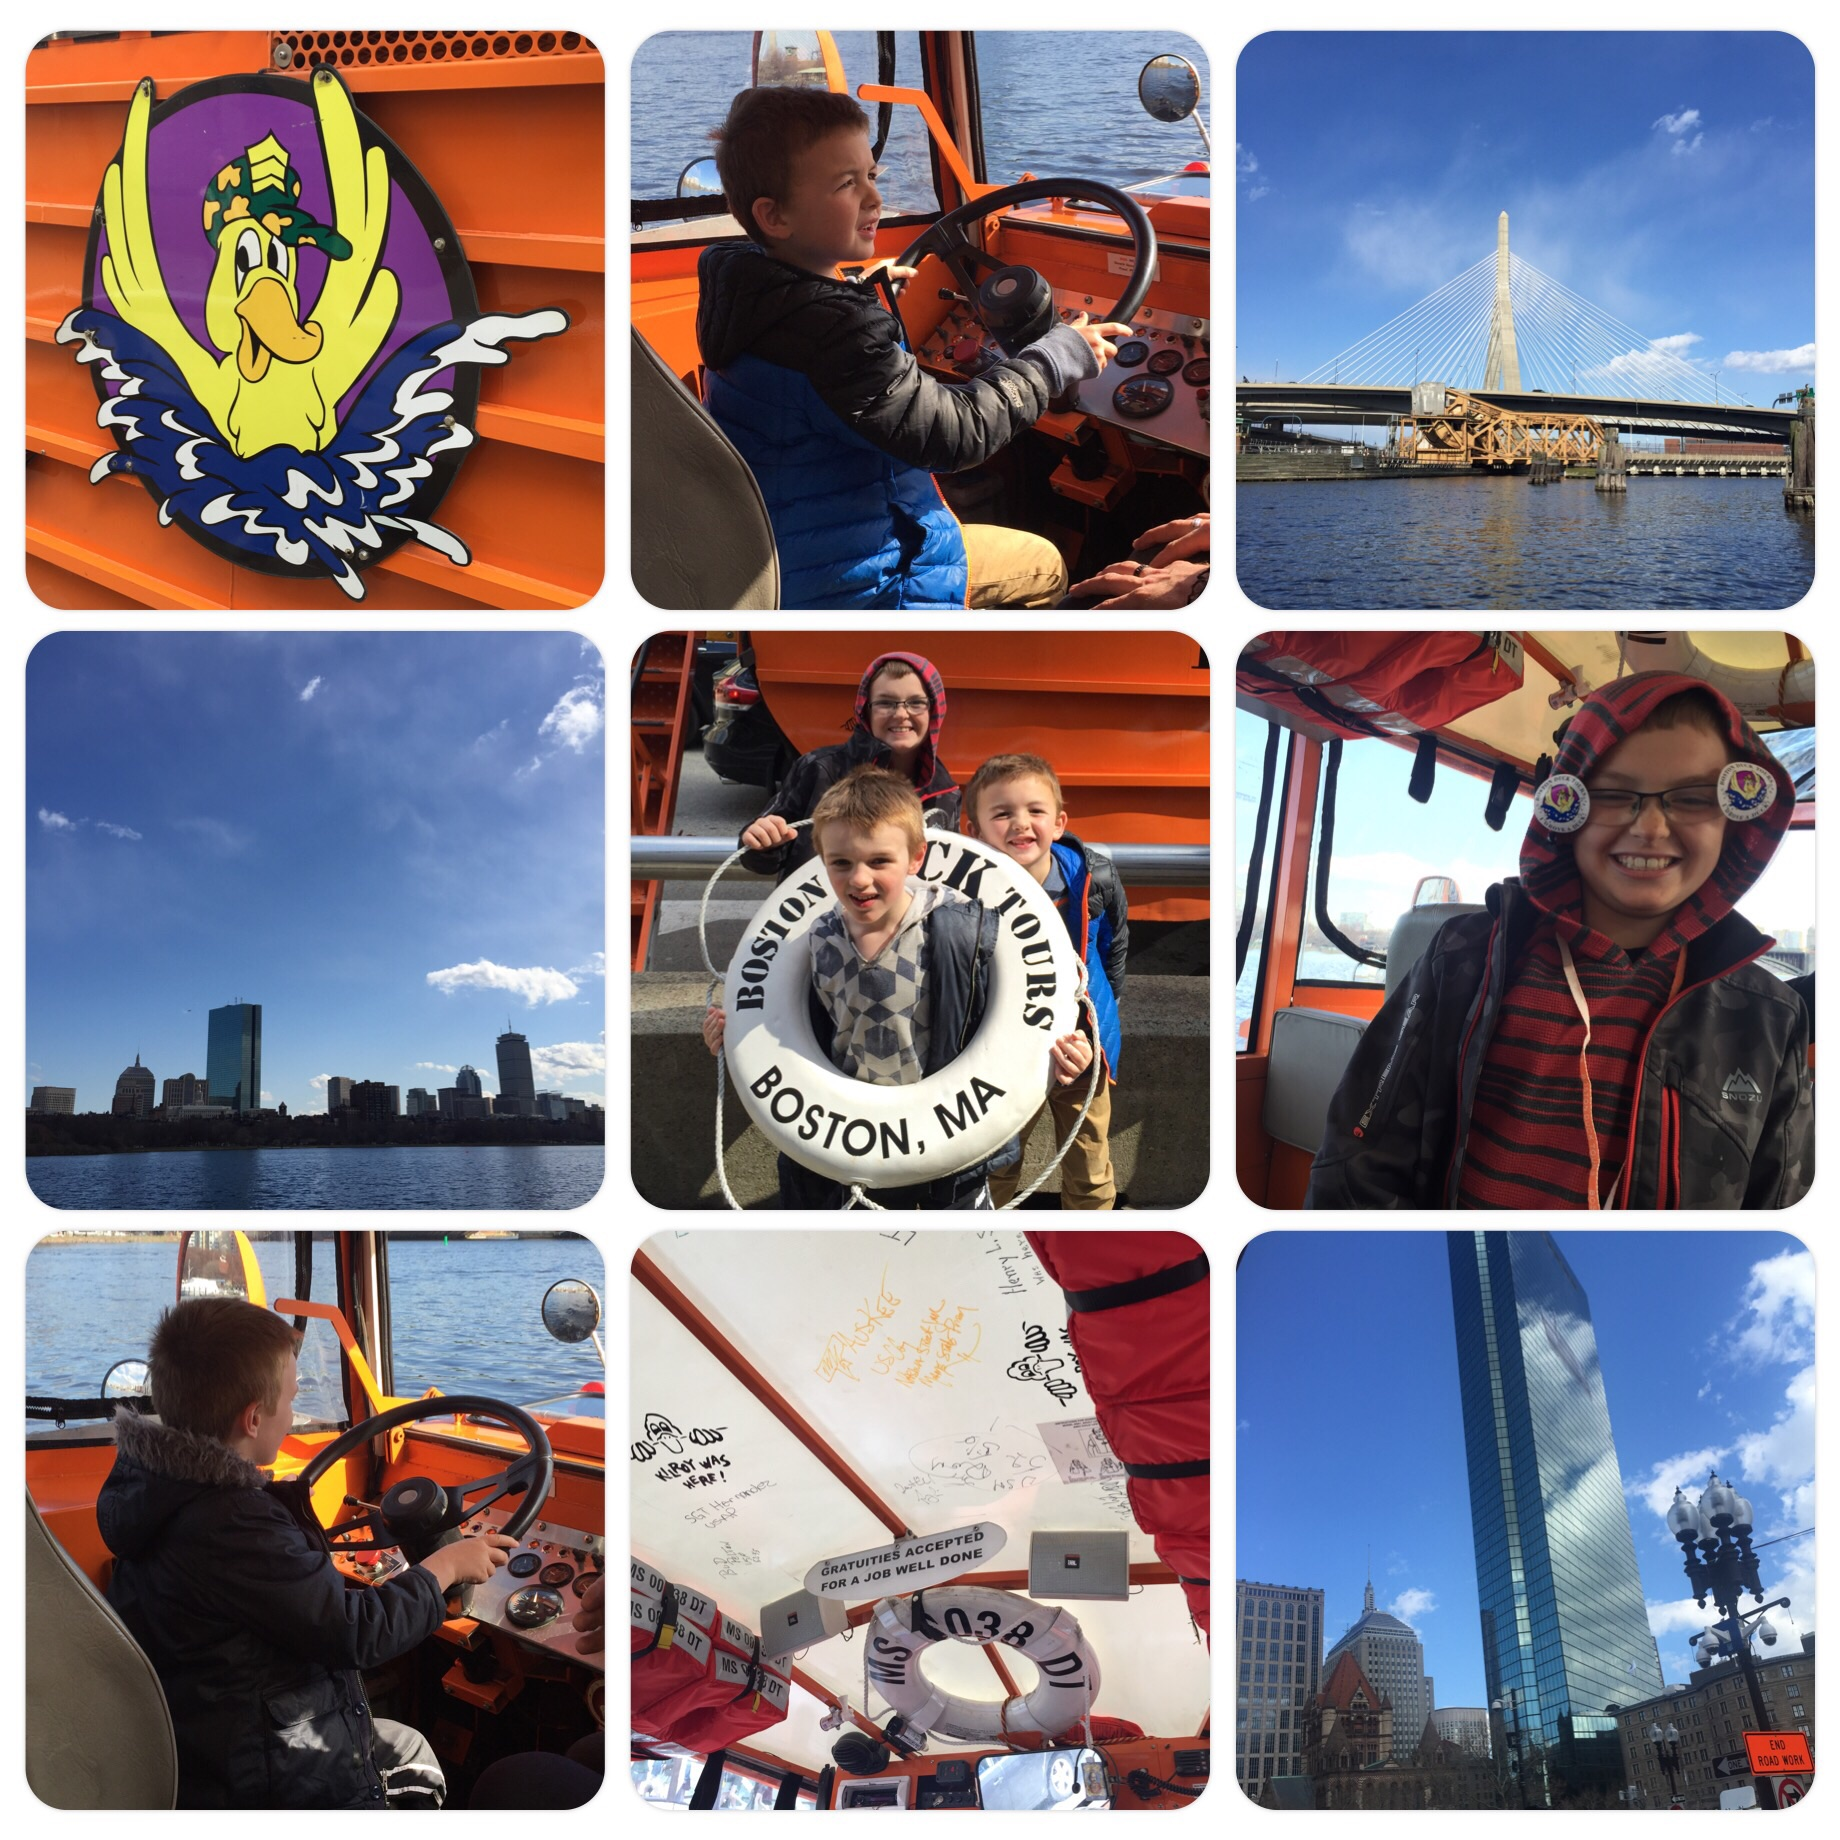 Boston Duck Tour - the kids got the drive the boat!